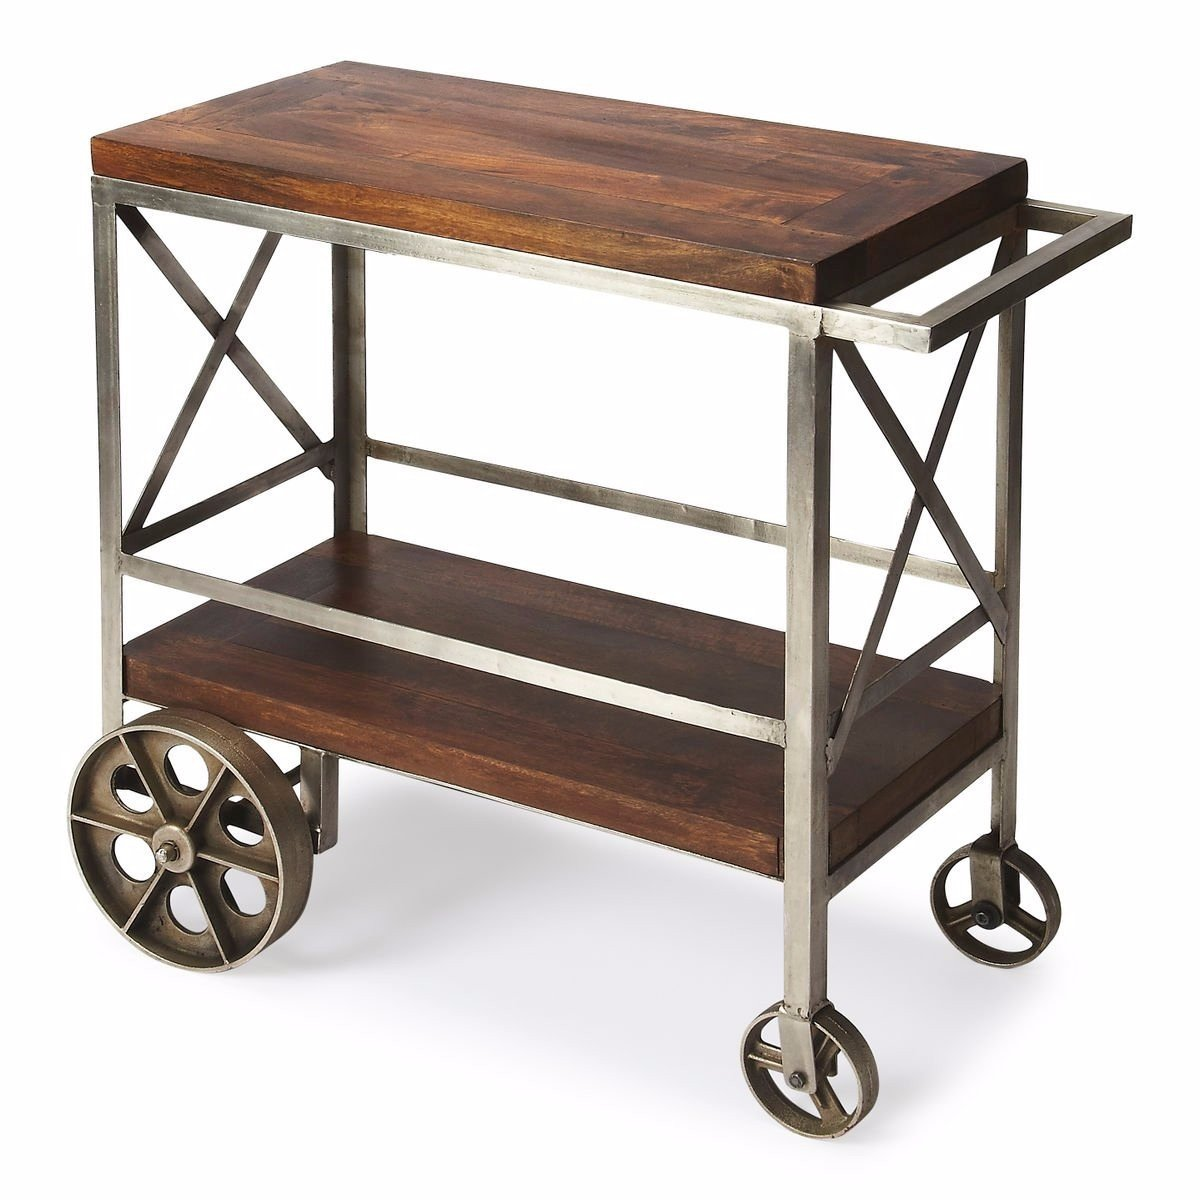 Ambiant Modern TROLLEY SERVER Multi-Color by Ambiant